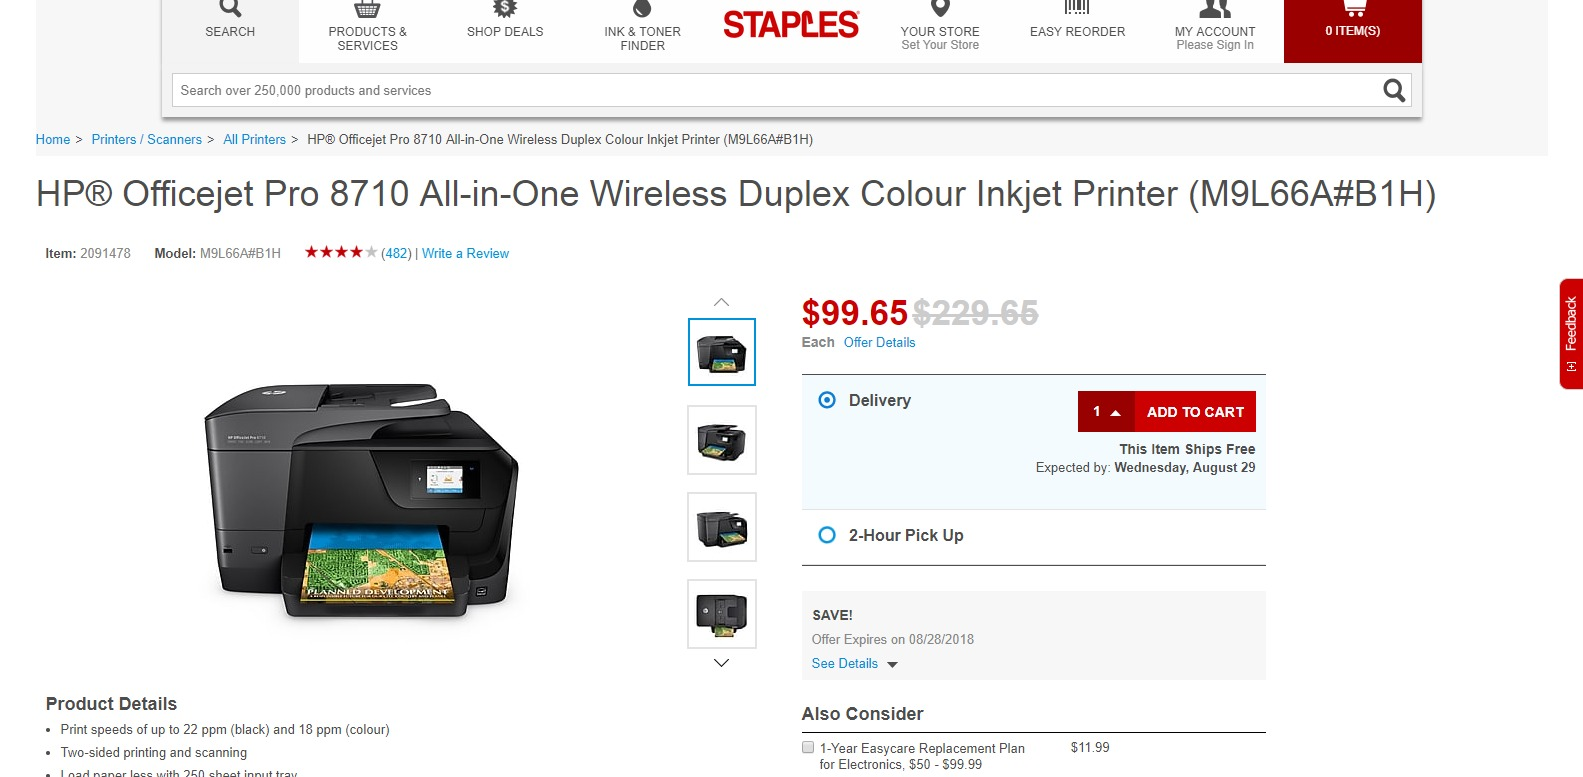 Black Friday Sale Staples Get Upto 50 Discount Across All